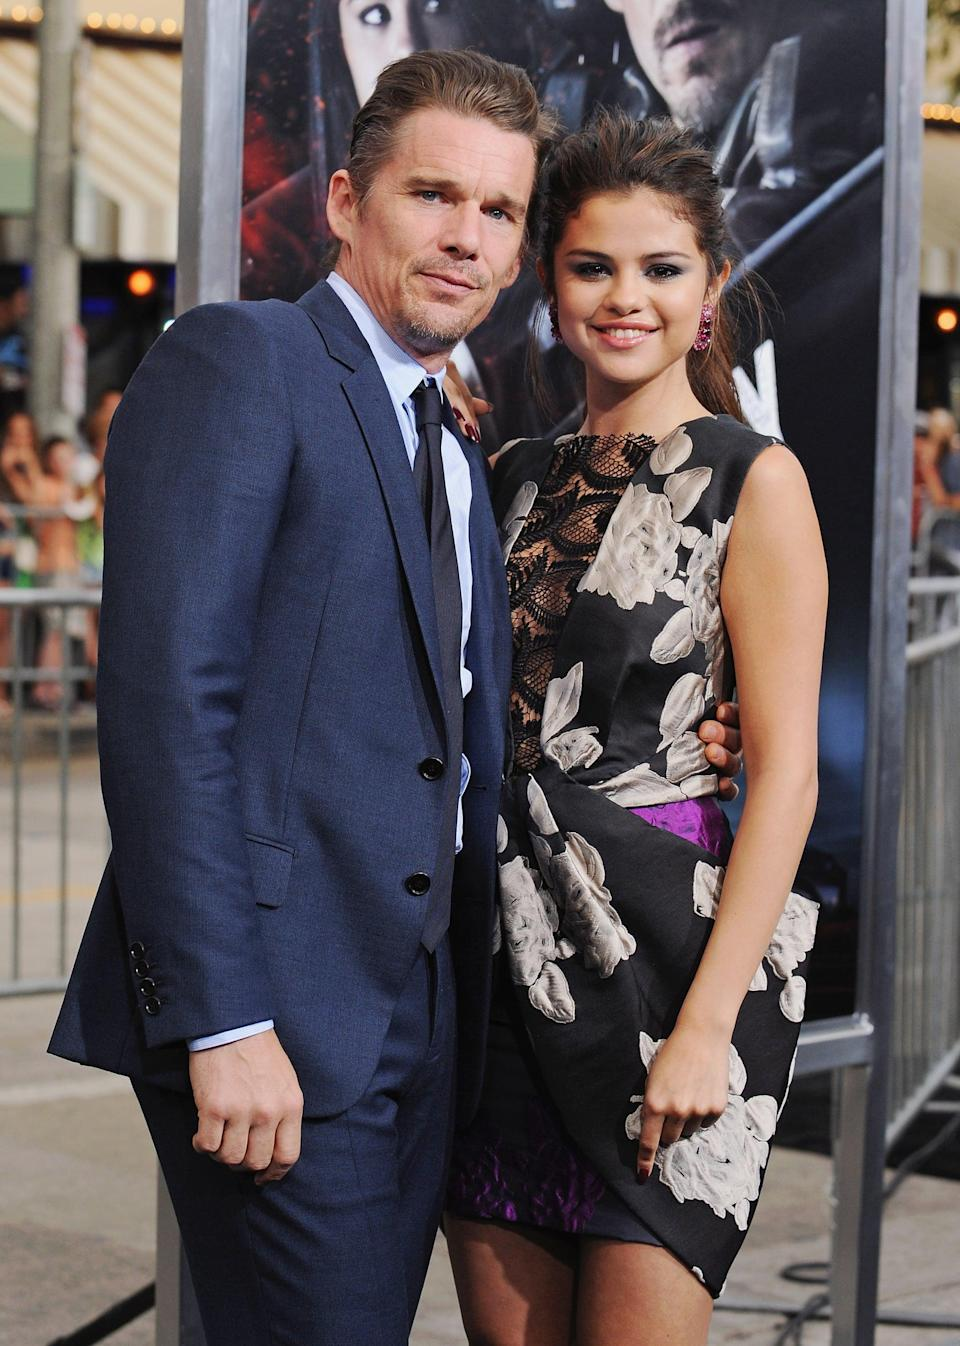 """<p>Selena walked the red carpet with <a class=""""link rapid-noclick-resp"""" href=""""https://www.popsugar.com/Ethan-Hawke"""" rel=""""nofollow noopener"""" target=""""_blank"""" data-ylk=""""slk:Ethan Hawke"""">Ethan Hawke</a> at the LA premiere of their action flick, <b>Getaway</b>.</p>"""